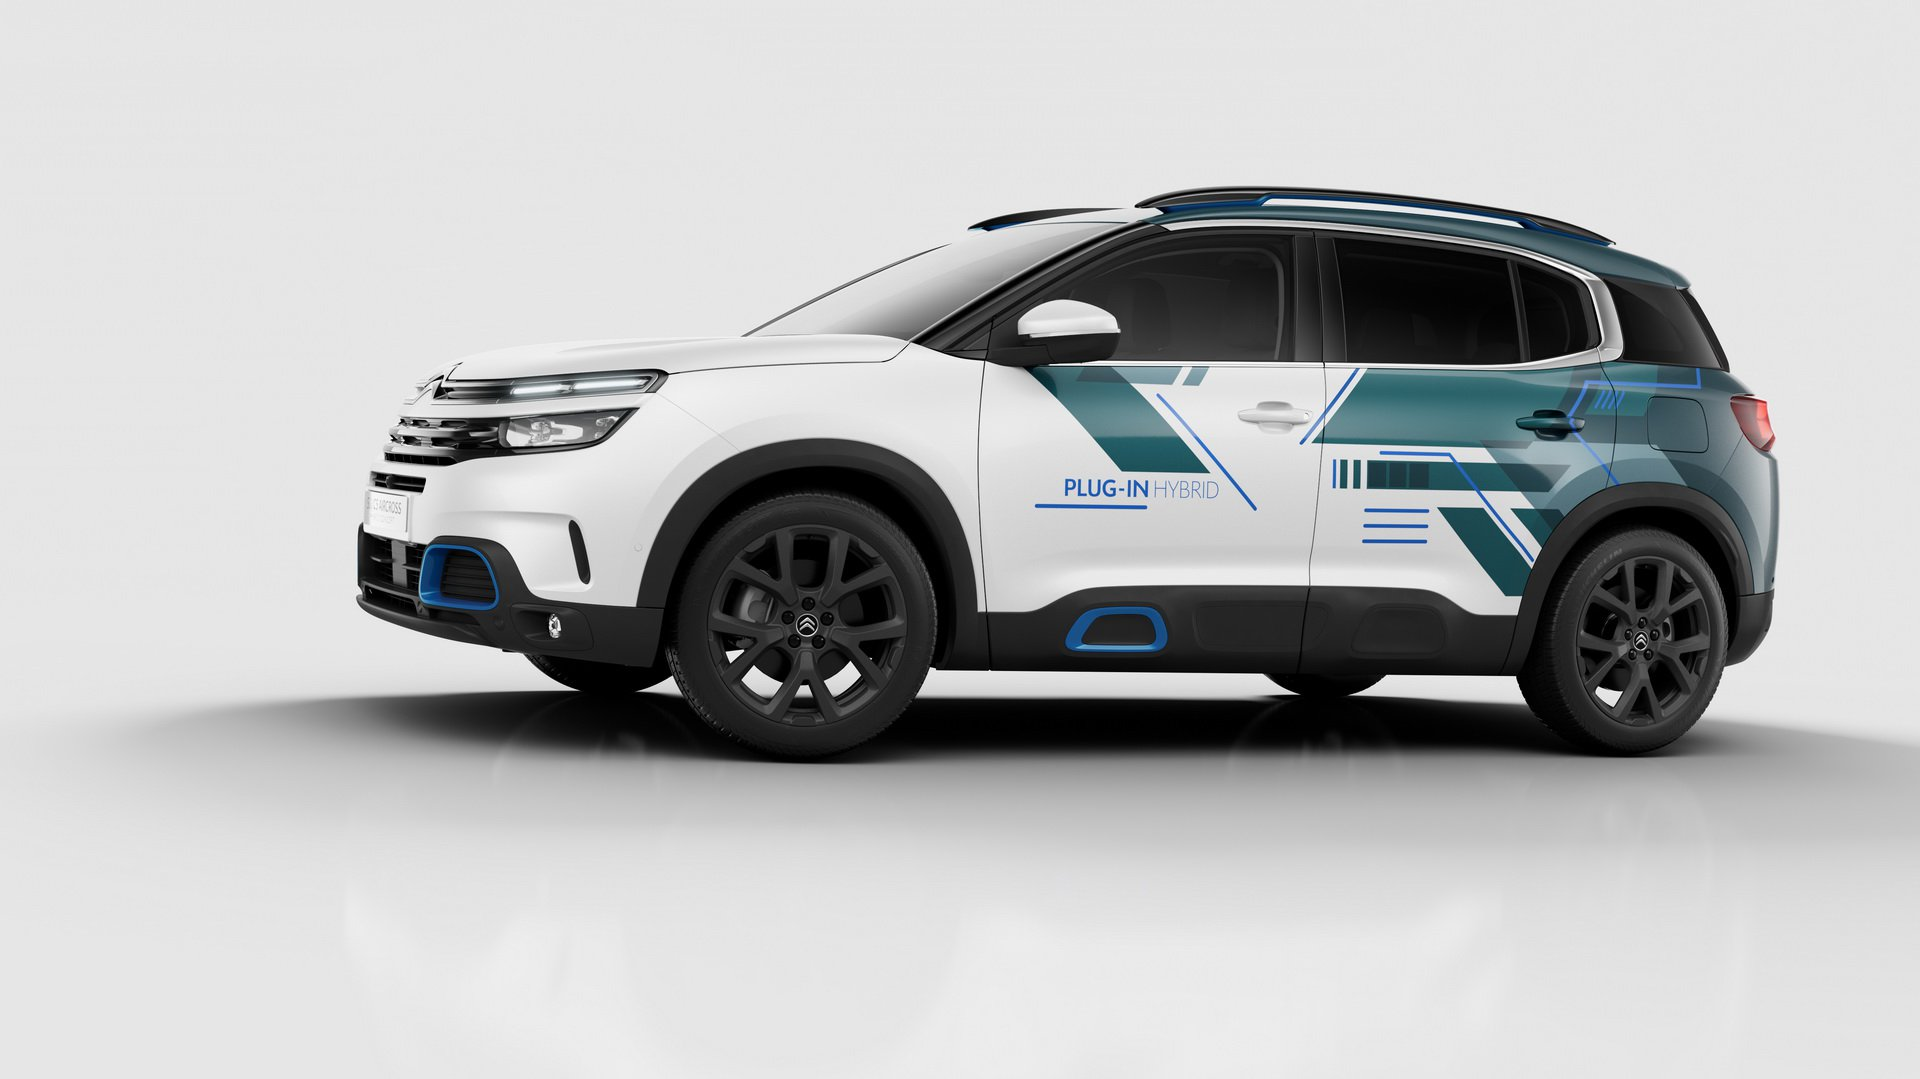 citroen c5 aircross suv hybrid concept looks almost ready for production autoevolution. Black Bedroom Furniture Sets. Home Design Ideas